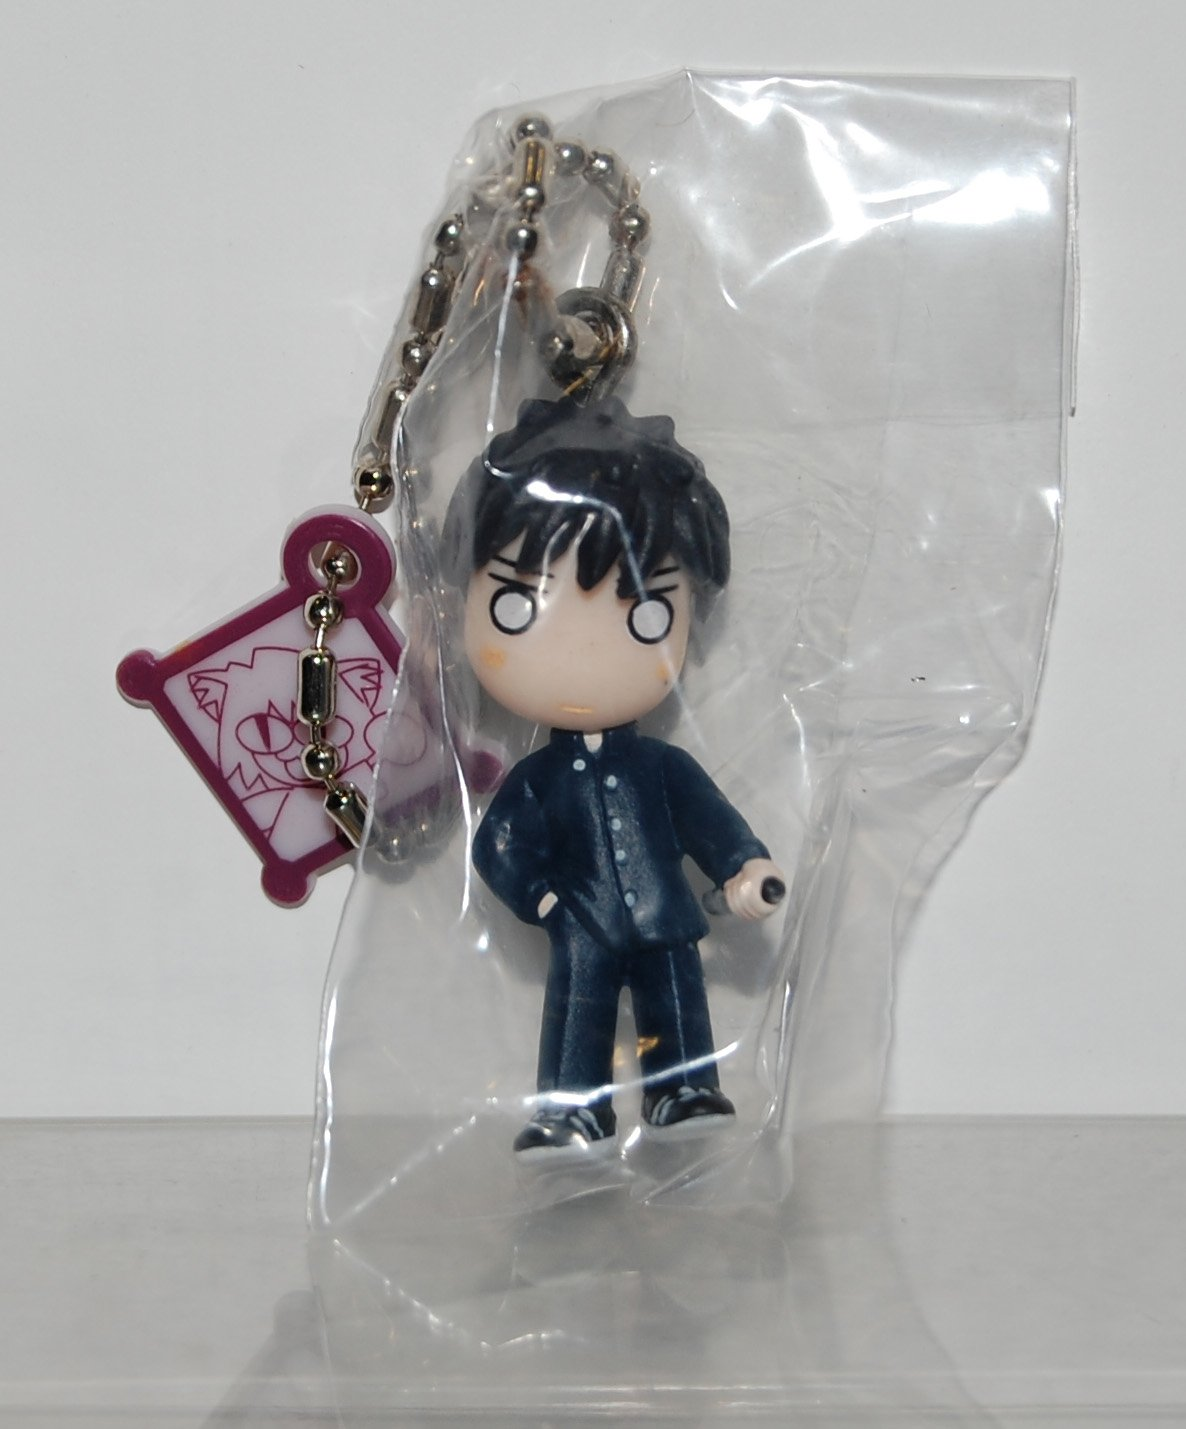 Yujin Gashapon Capsule Toy Melty Blood Figure Key Chain Shiki Tohno in Dark Blue Suit